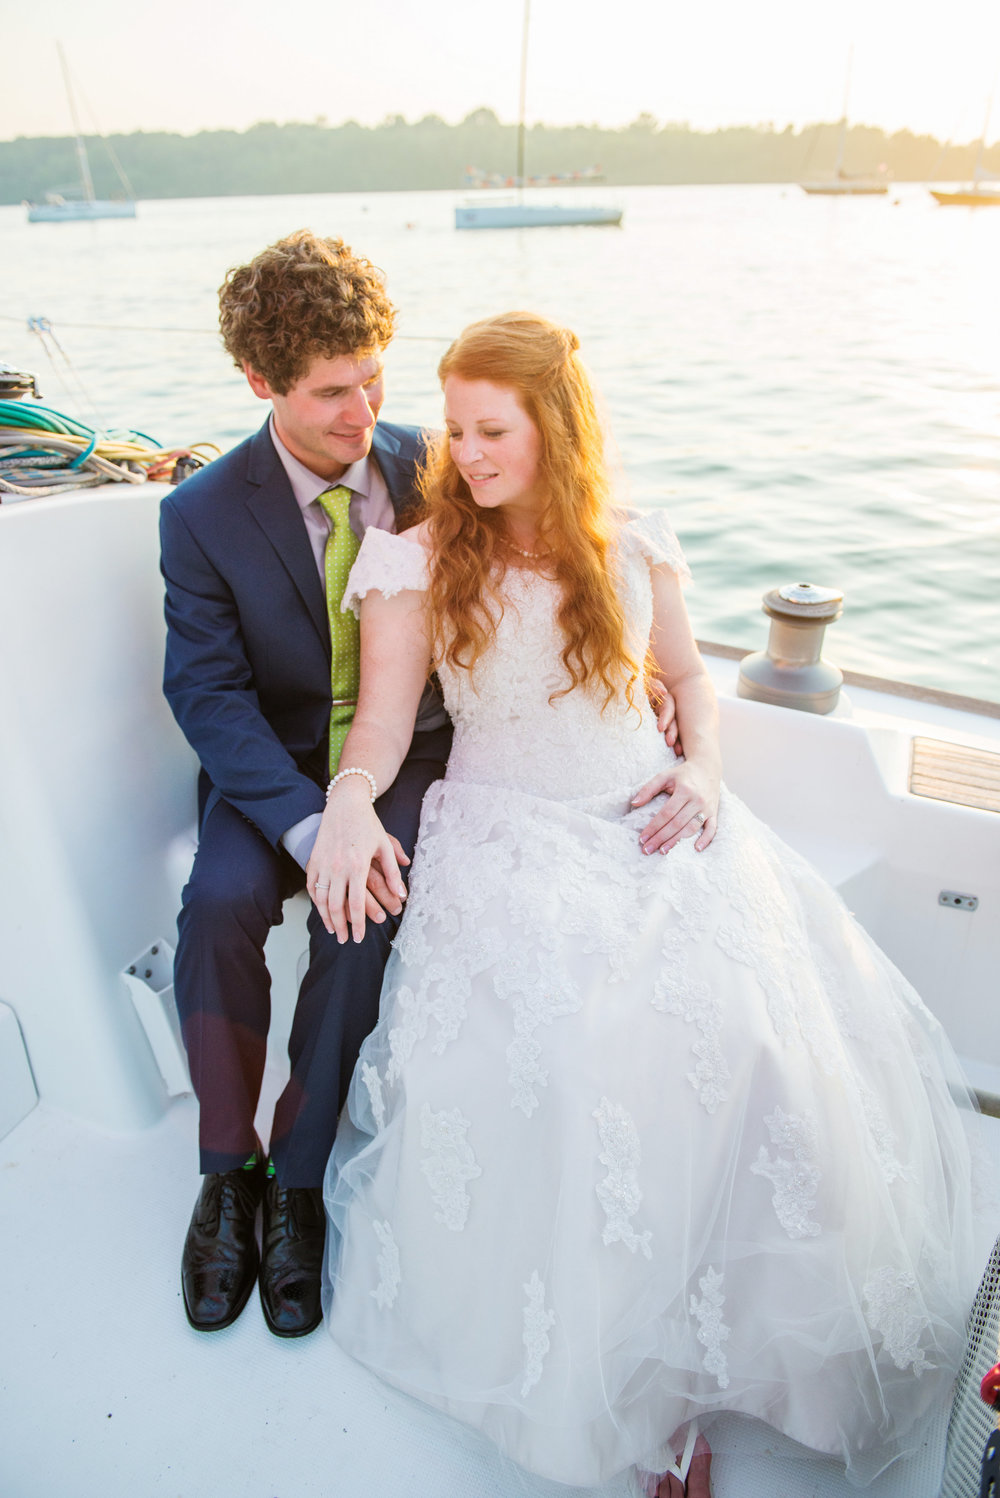 HR+-+4+Rich+Jill+Wed-Boat+Sunset+Photos-0052.jpg